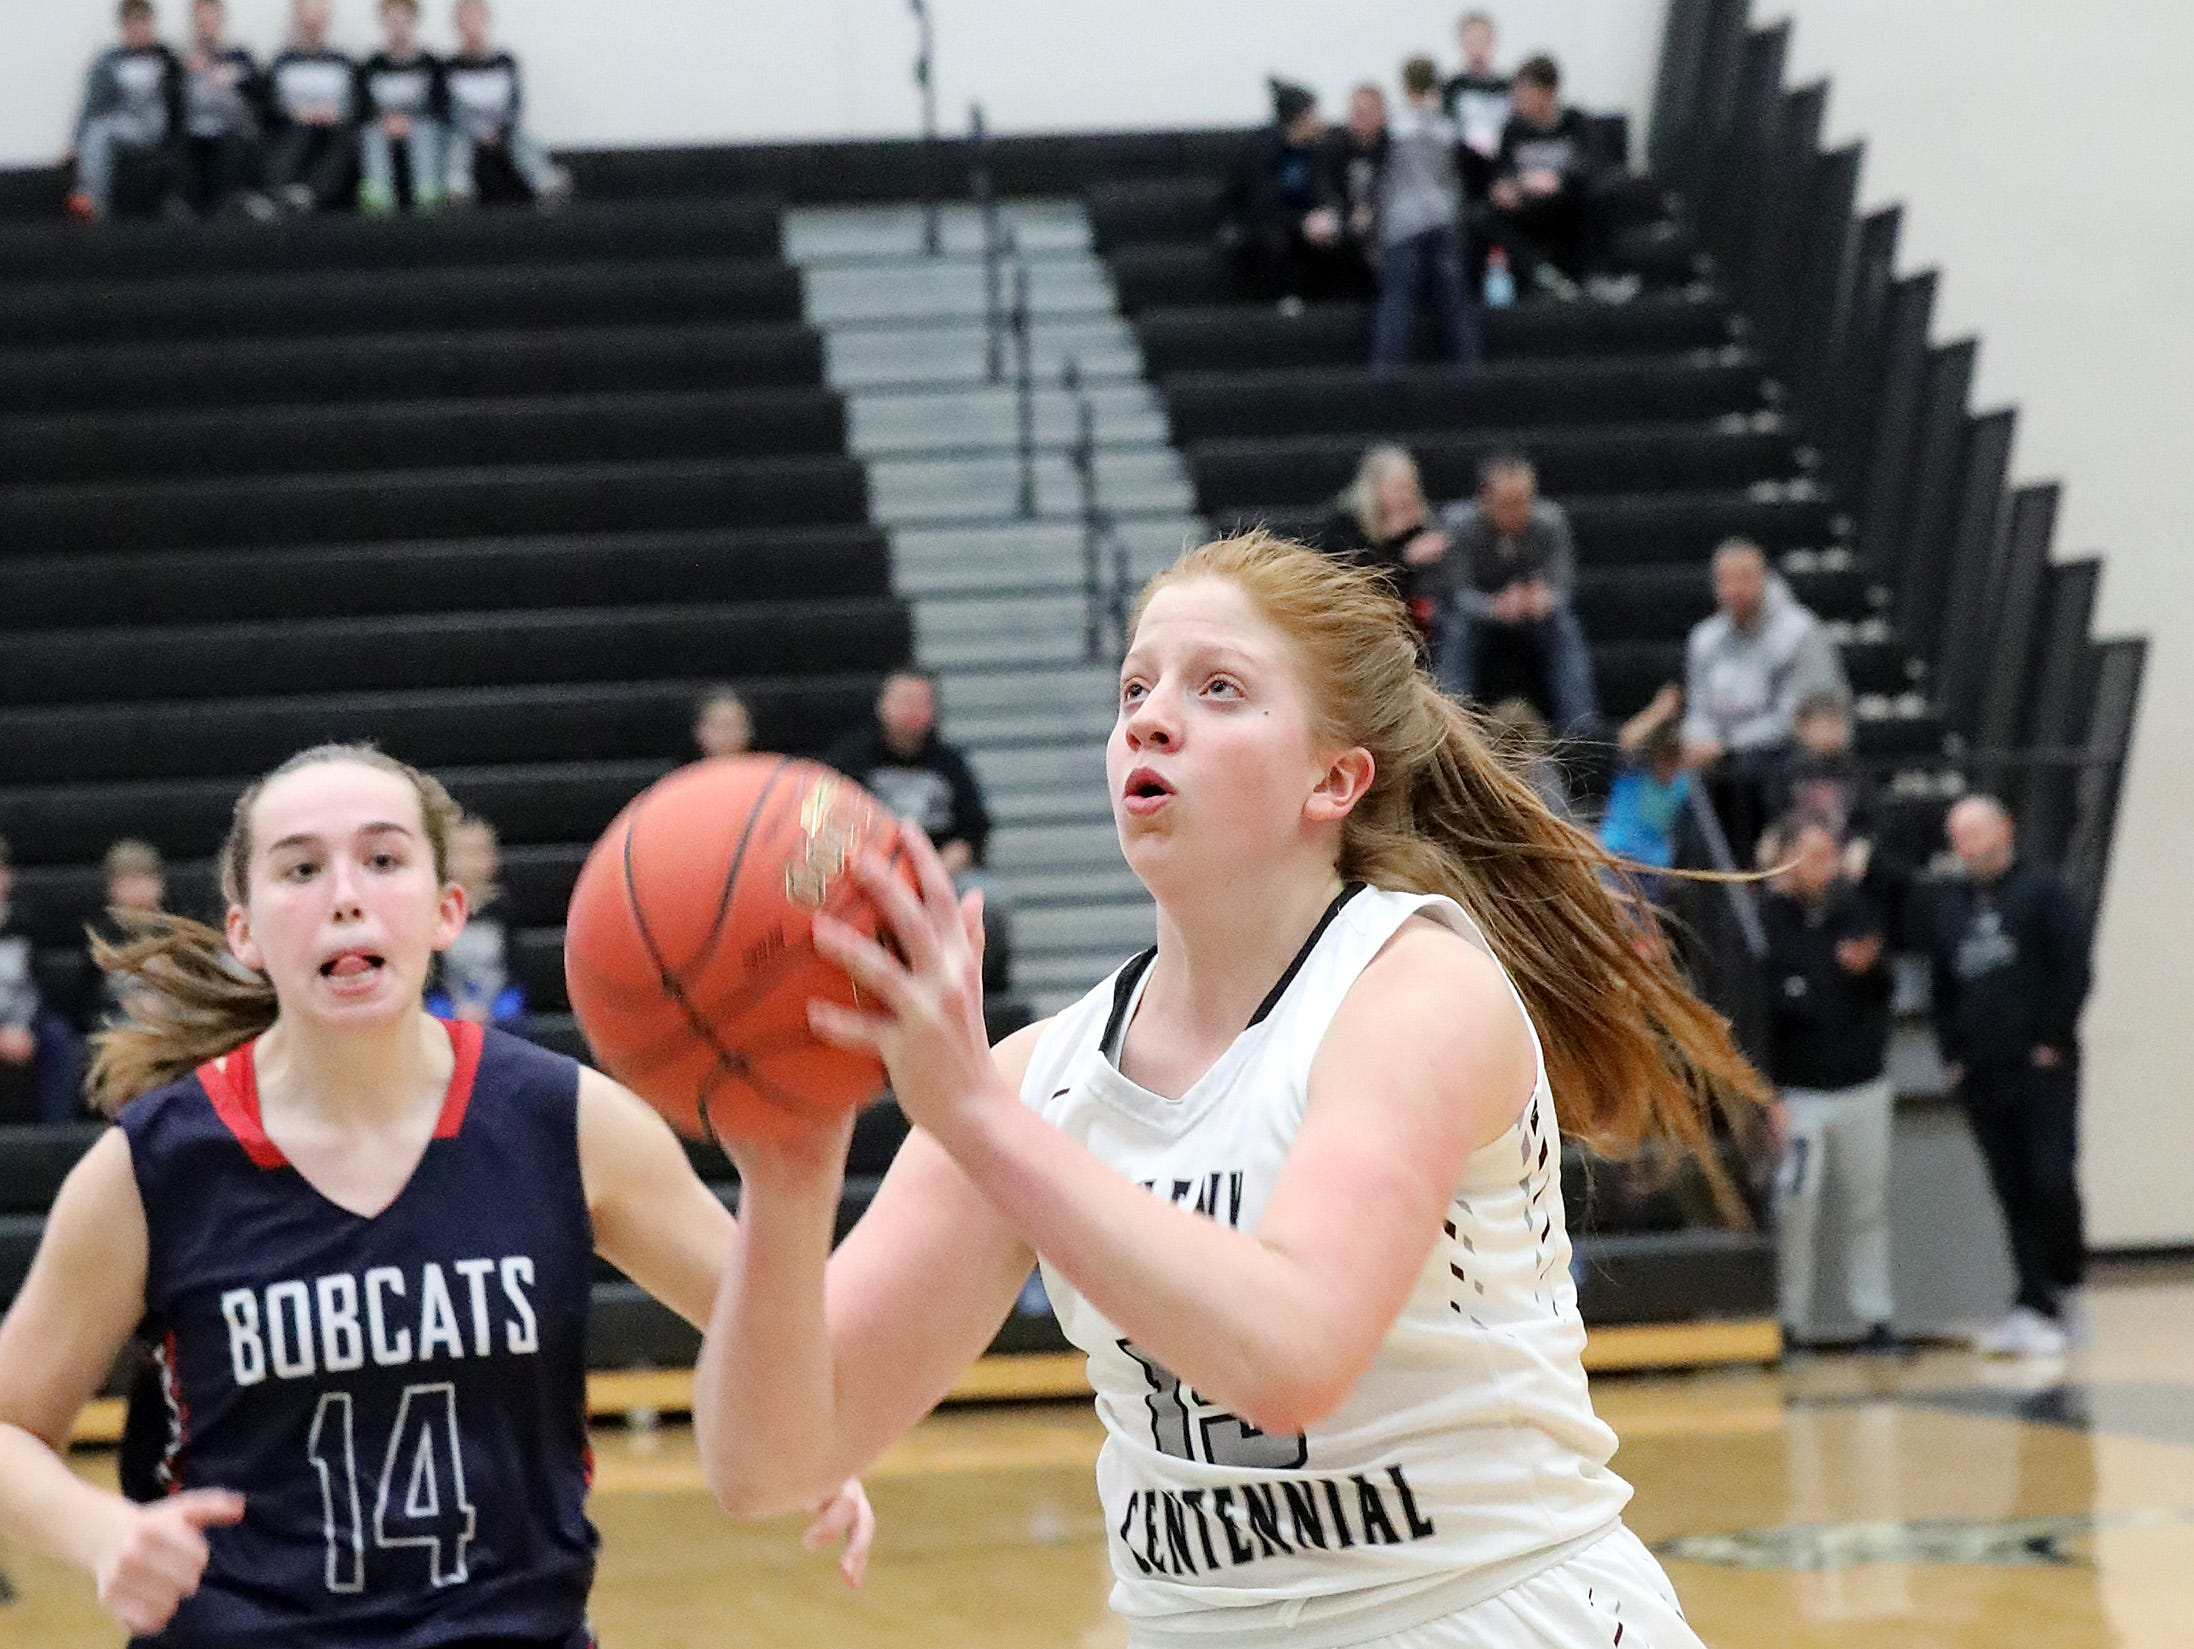 Ankeny Centennial sophomore Jackie Pippett tries a lay-up as the Marshalltown Bobcats compete against the Ankeny Centennial Jaguars in high school girls basketball on Tuesday, Jan. 8, 2019 at Ankeny Centennial High School.